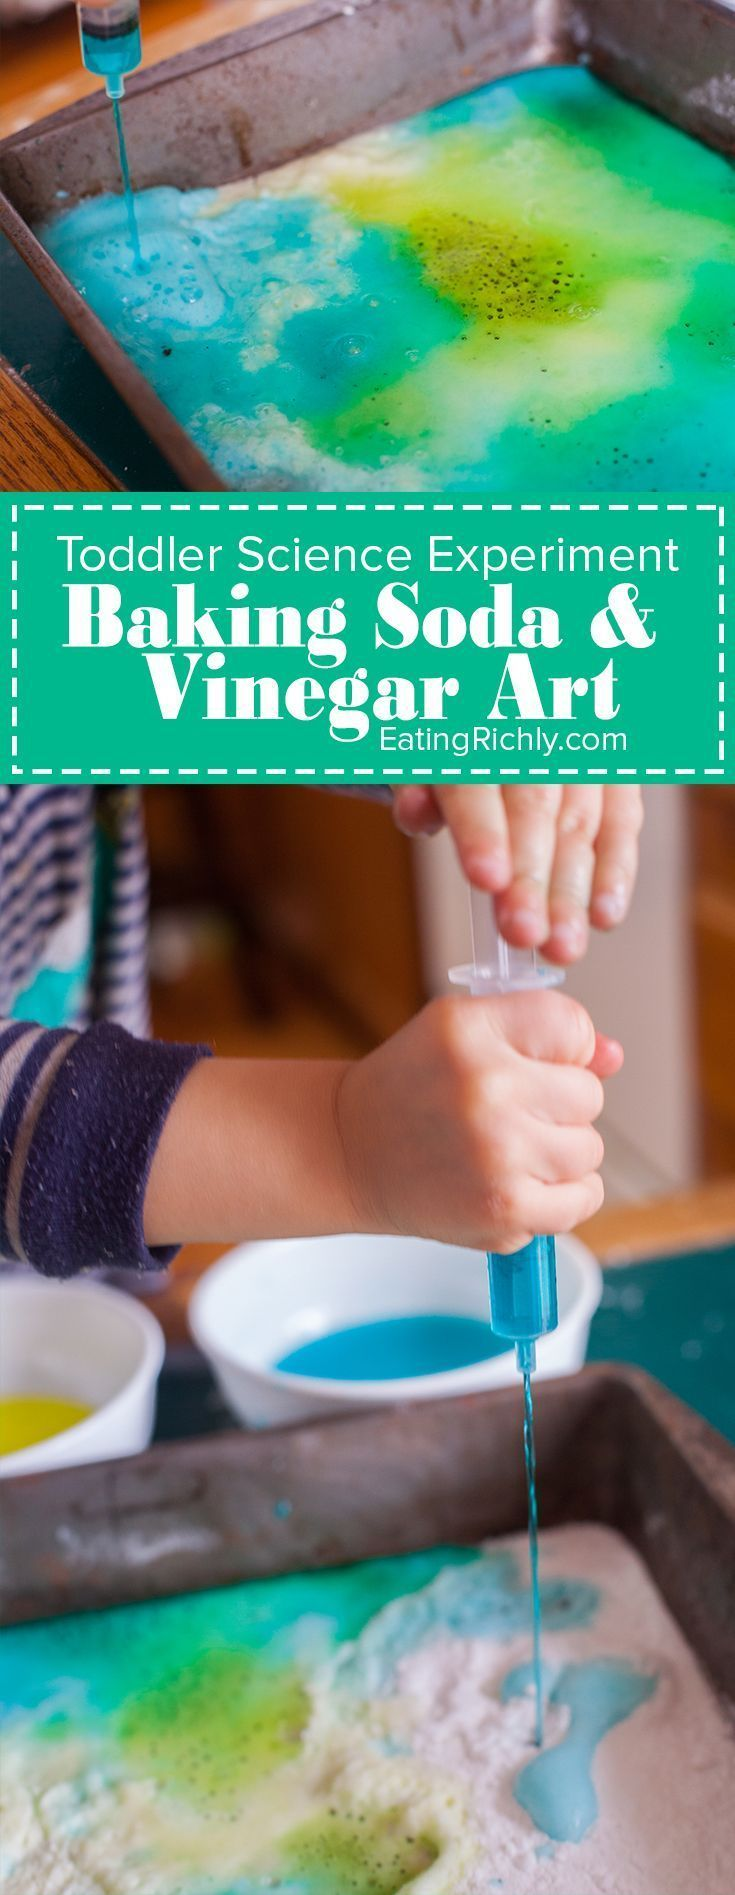 Worksheet Baking Science Experiments 1000 ideas about baking soda experiments on pinterest 4th grade this toddler science experiment teaches how and vinegar react